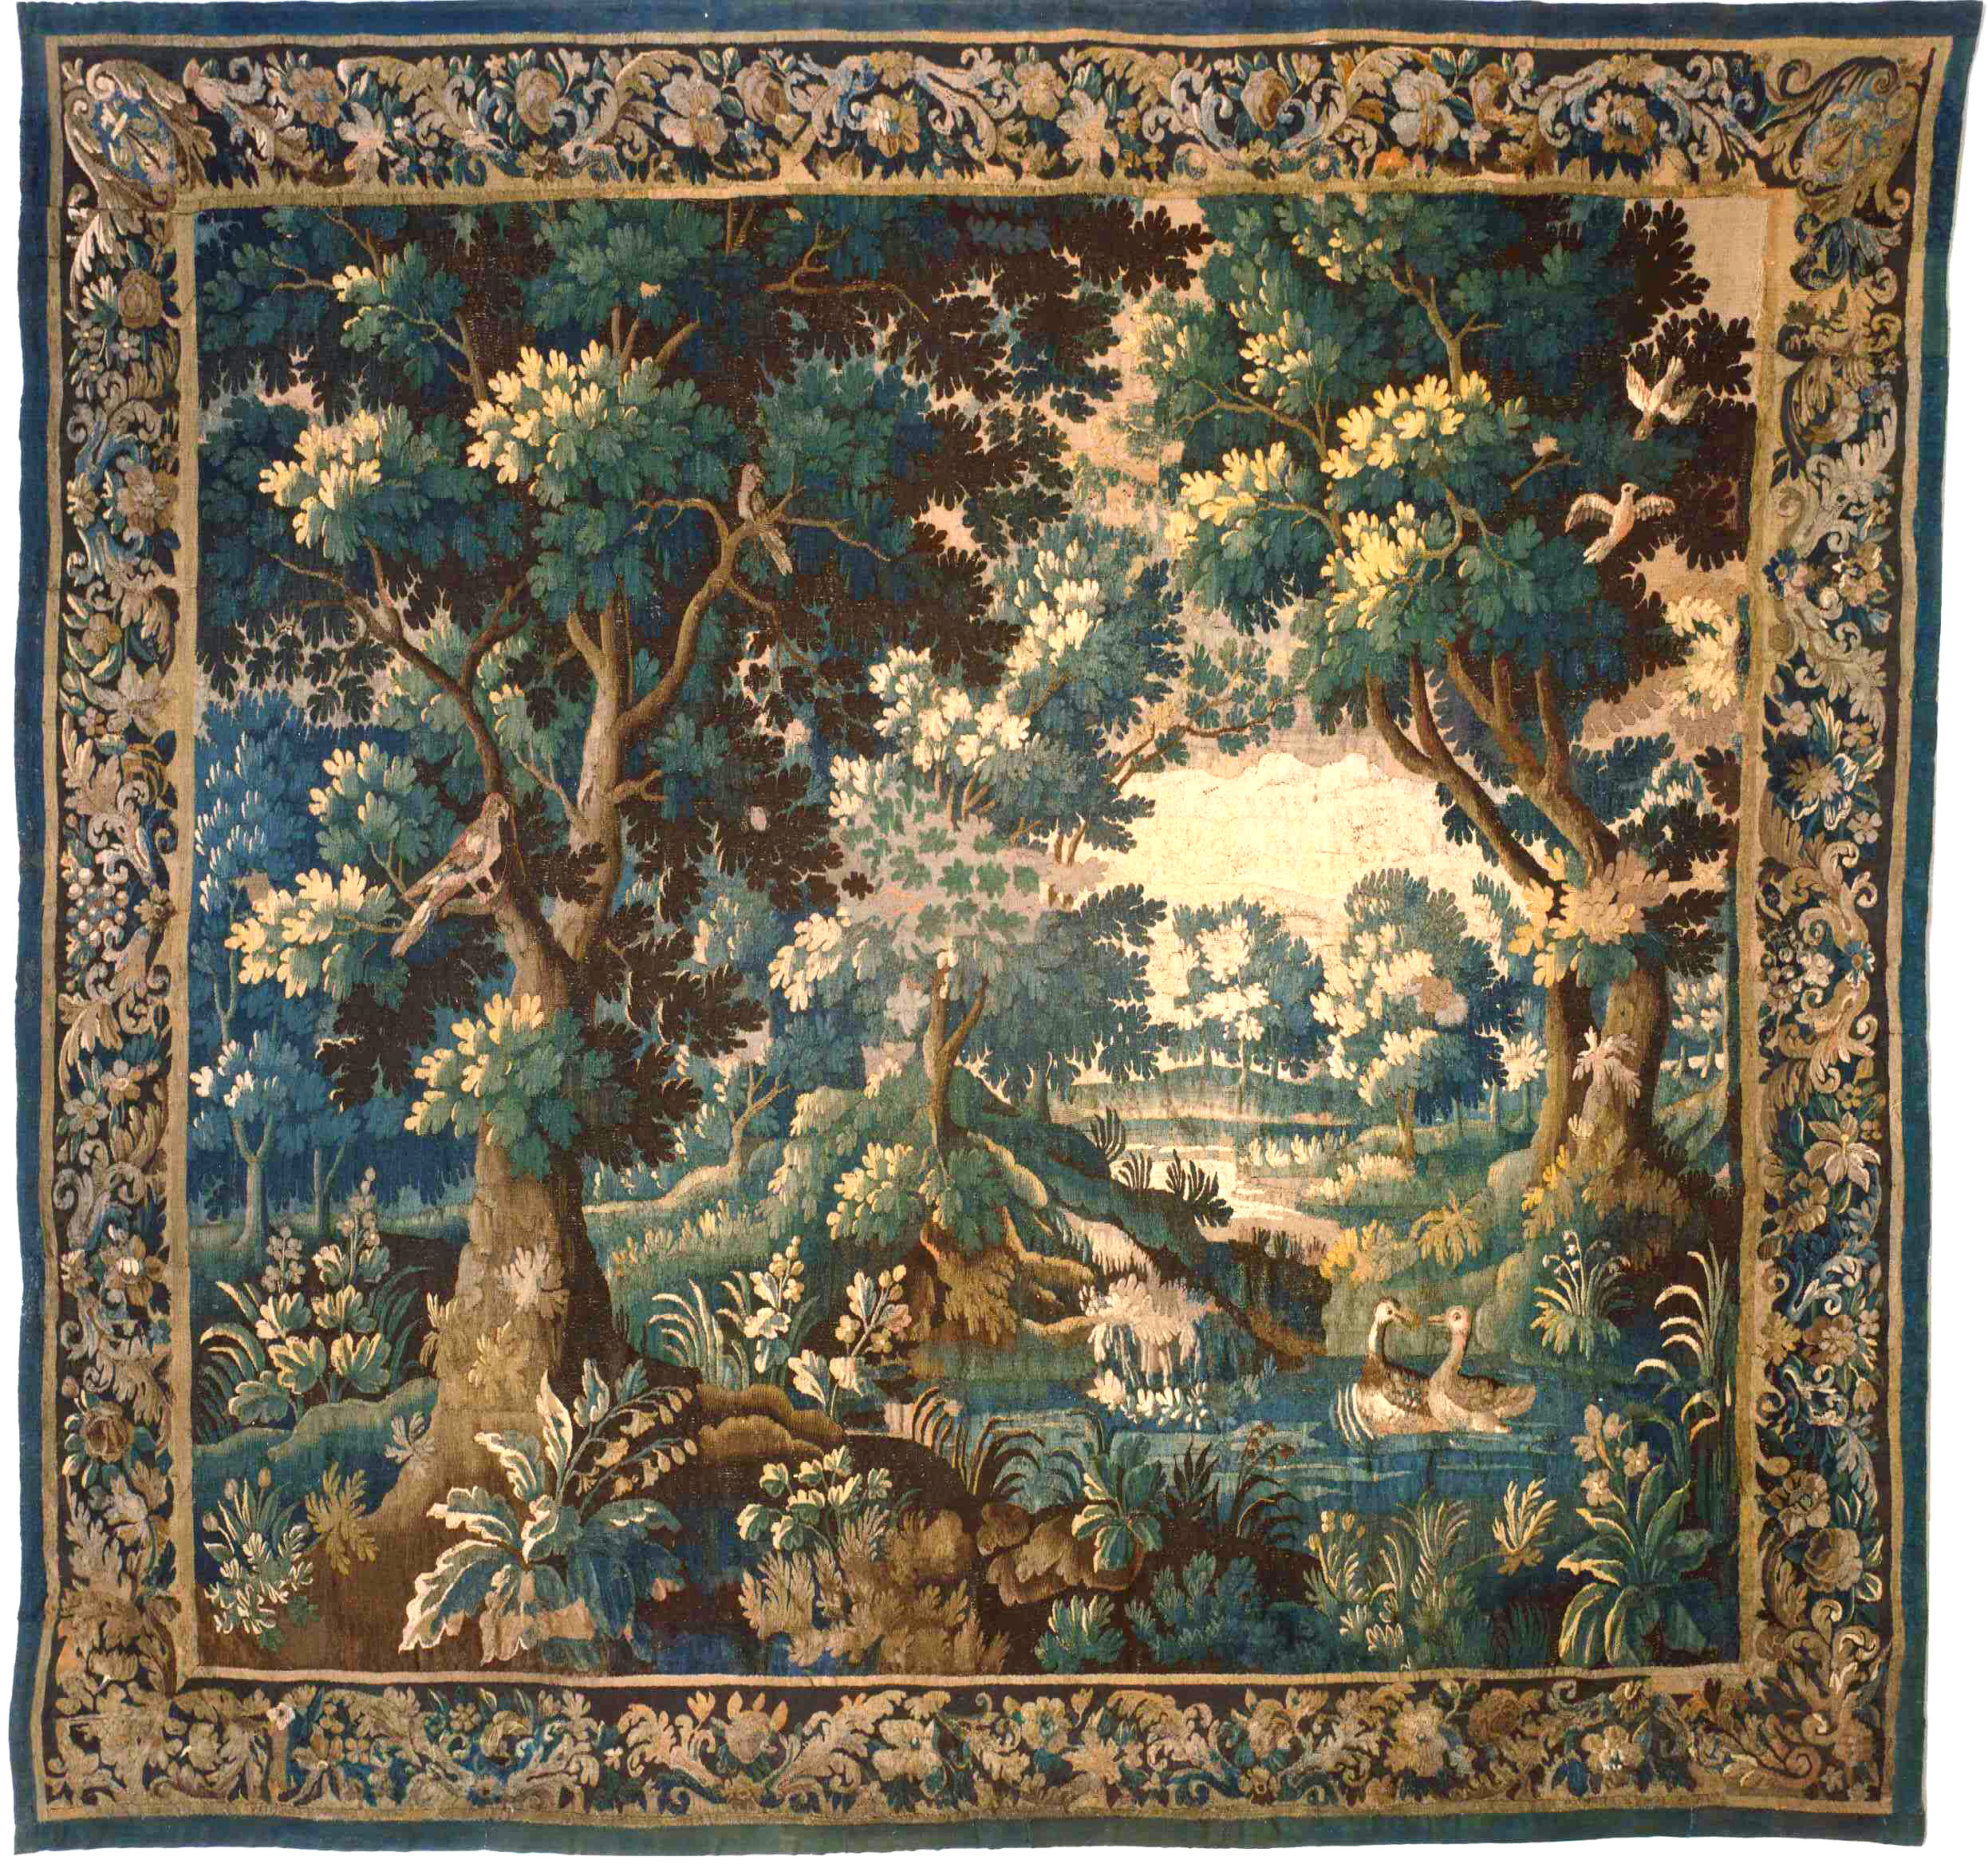 Pgny Antique Tapestry On Display In The Showroom Of